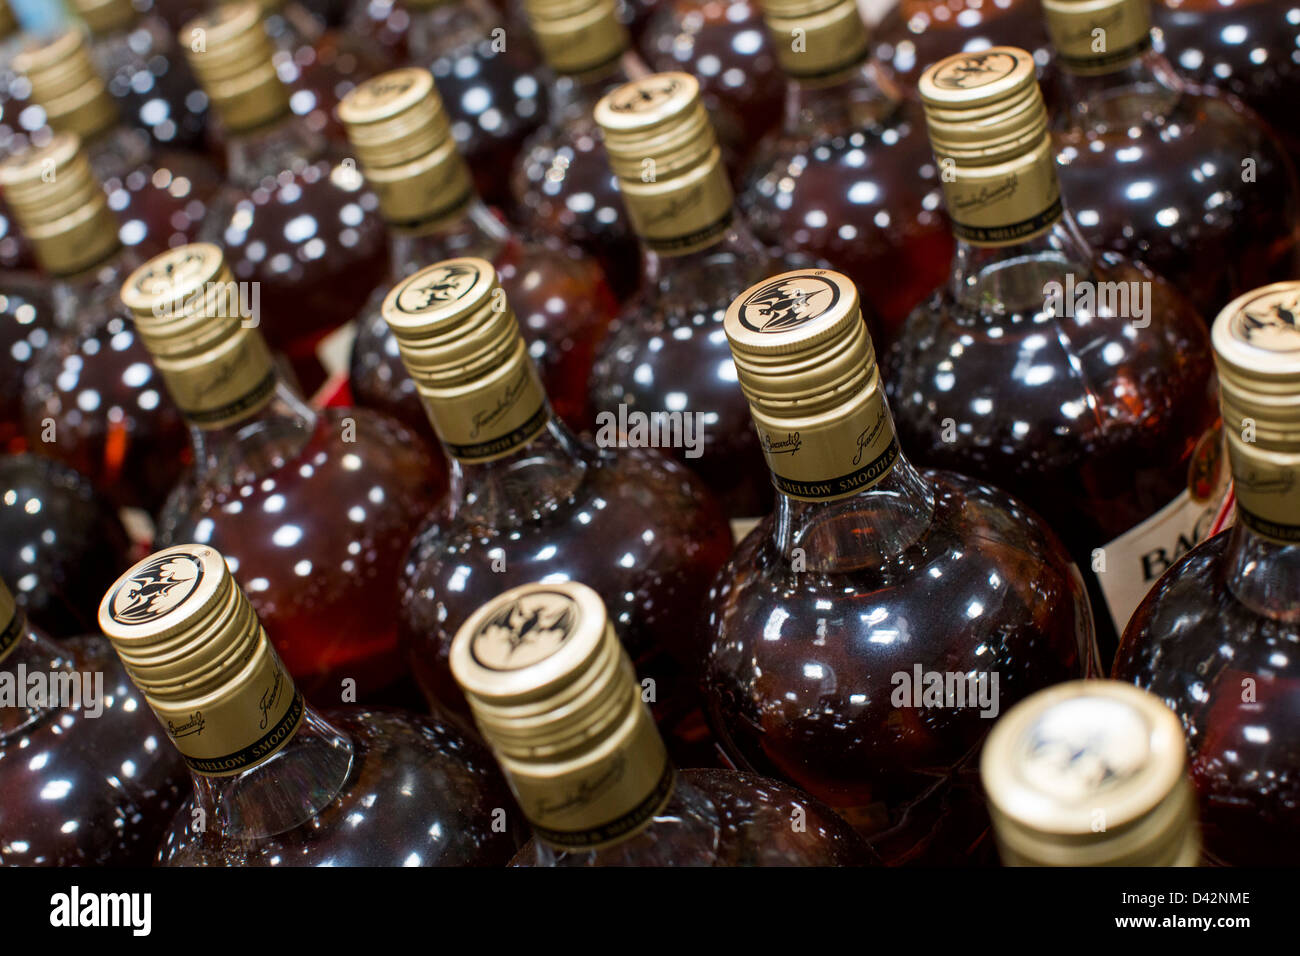 Bacardi Rum on display at a Costco Wholesale Warehouse Club. - Stock Image